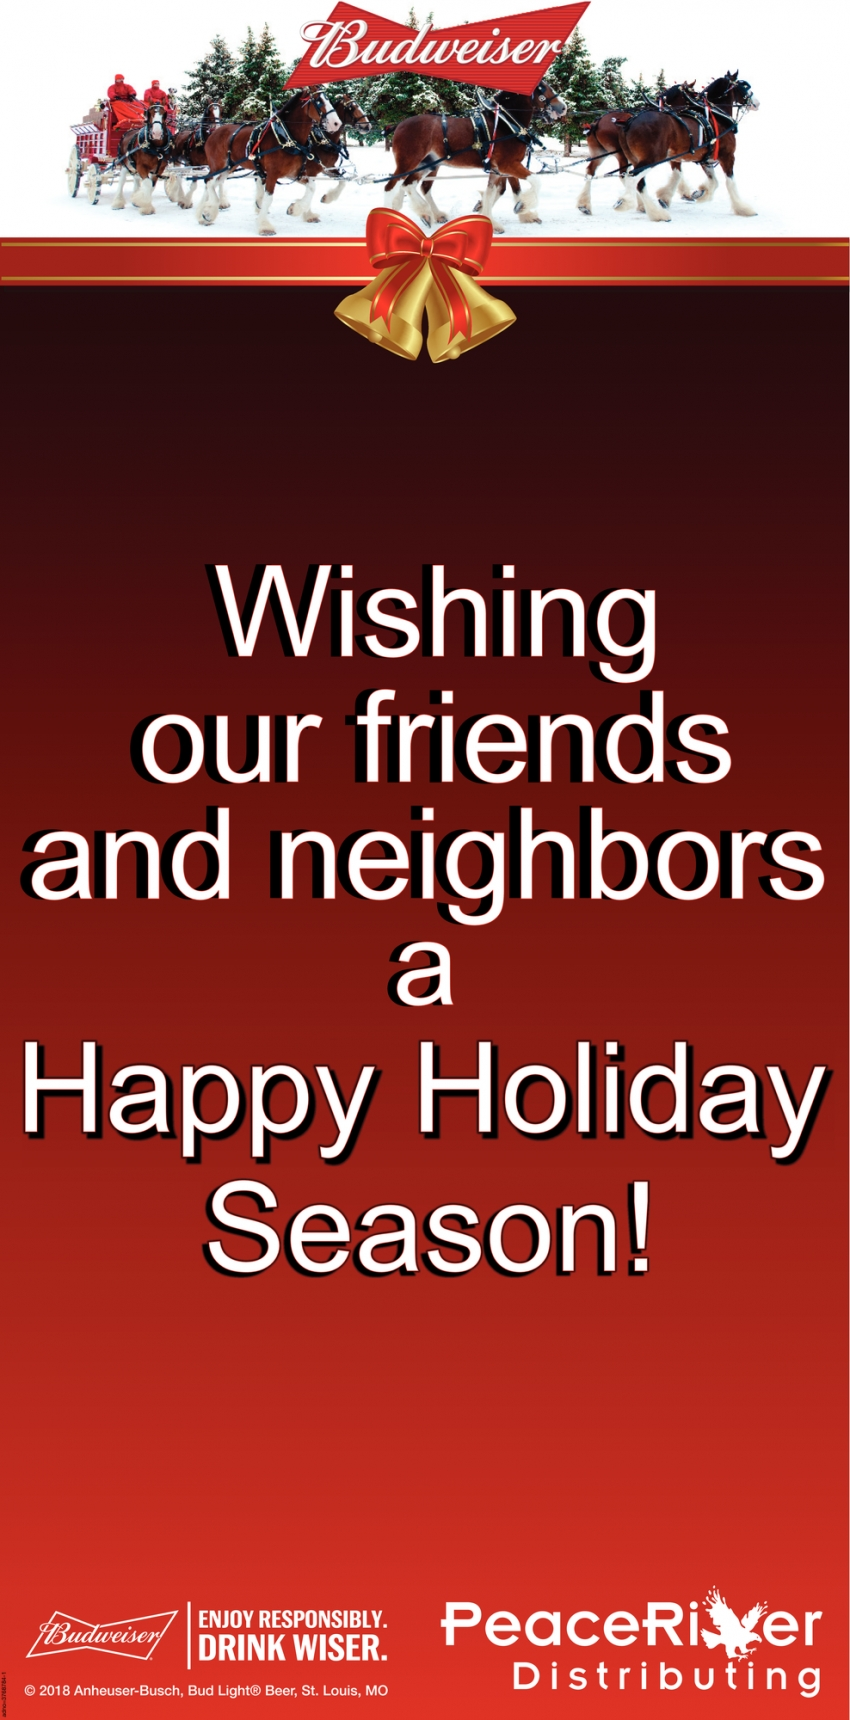 Wishing Our Friends and Neighbors a Happy Holiday Season!